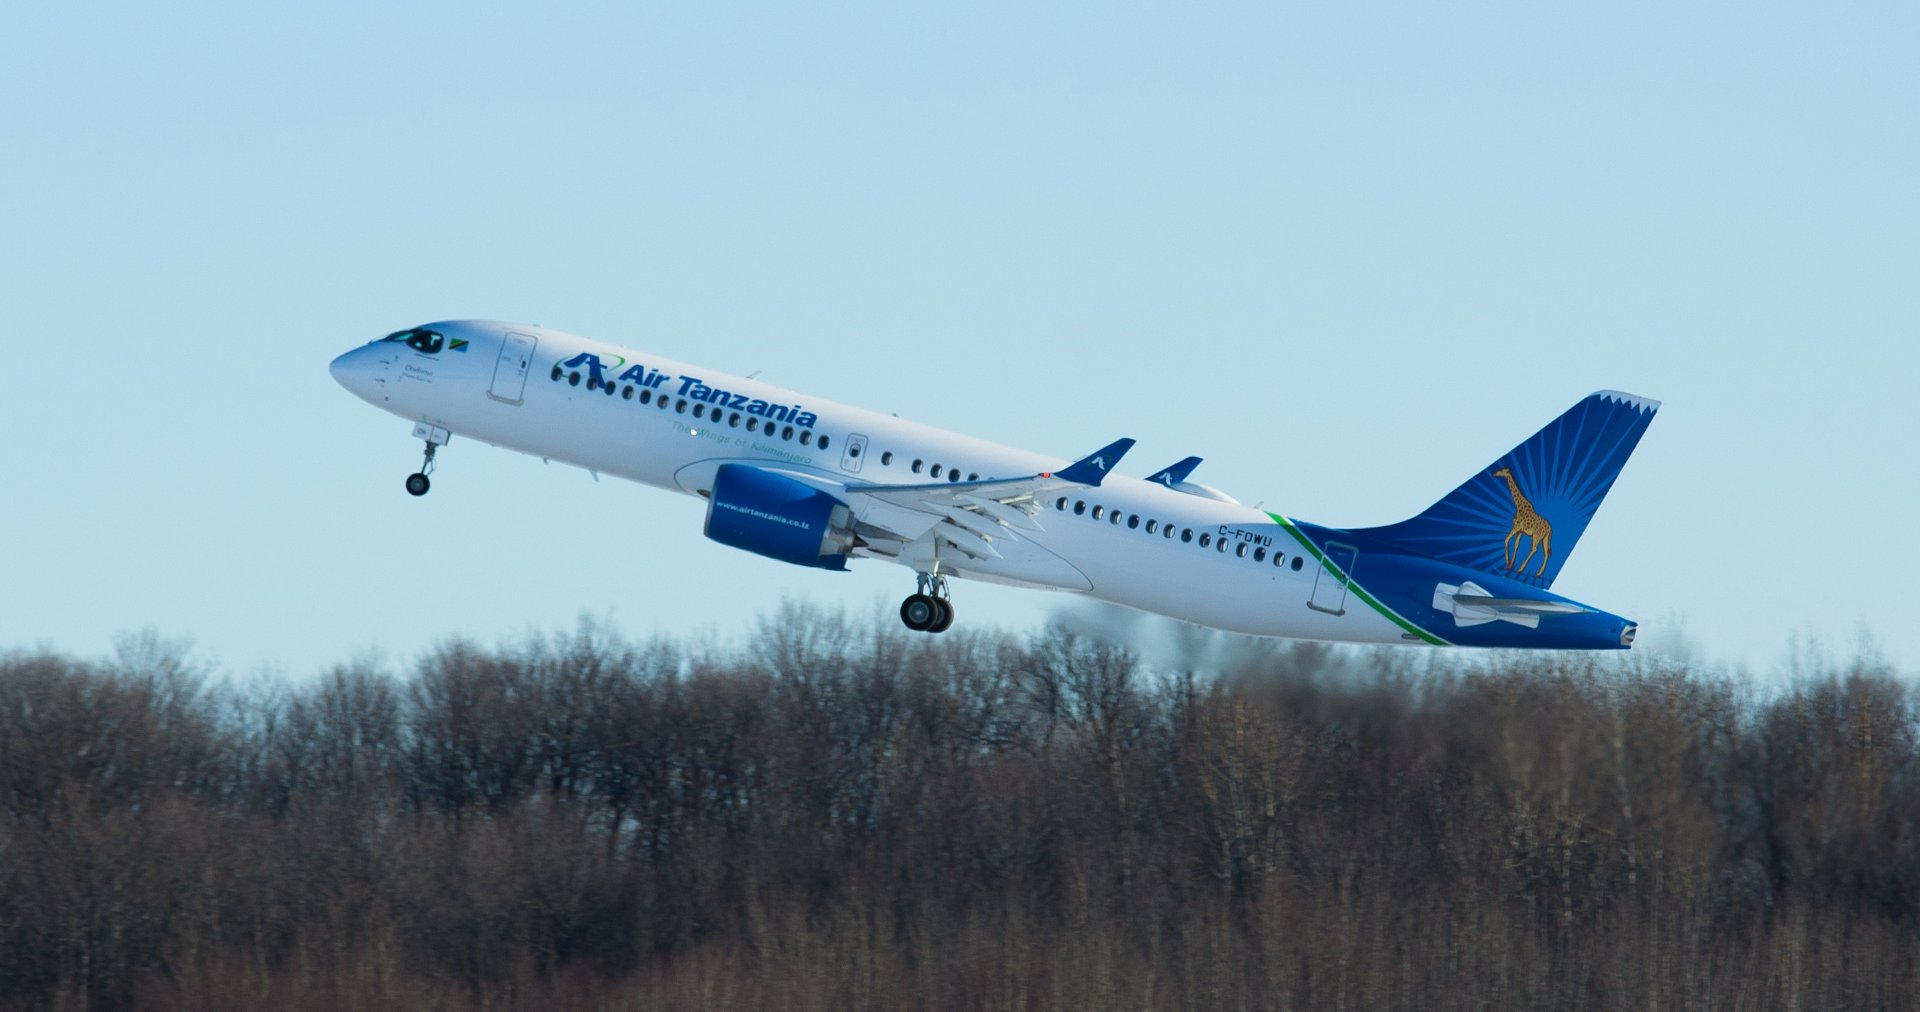 Air Tanzania's first A220